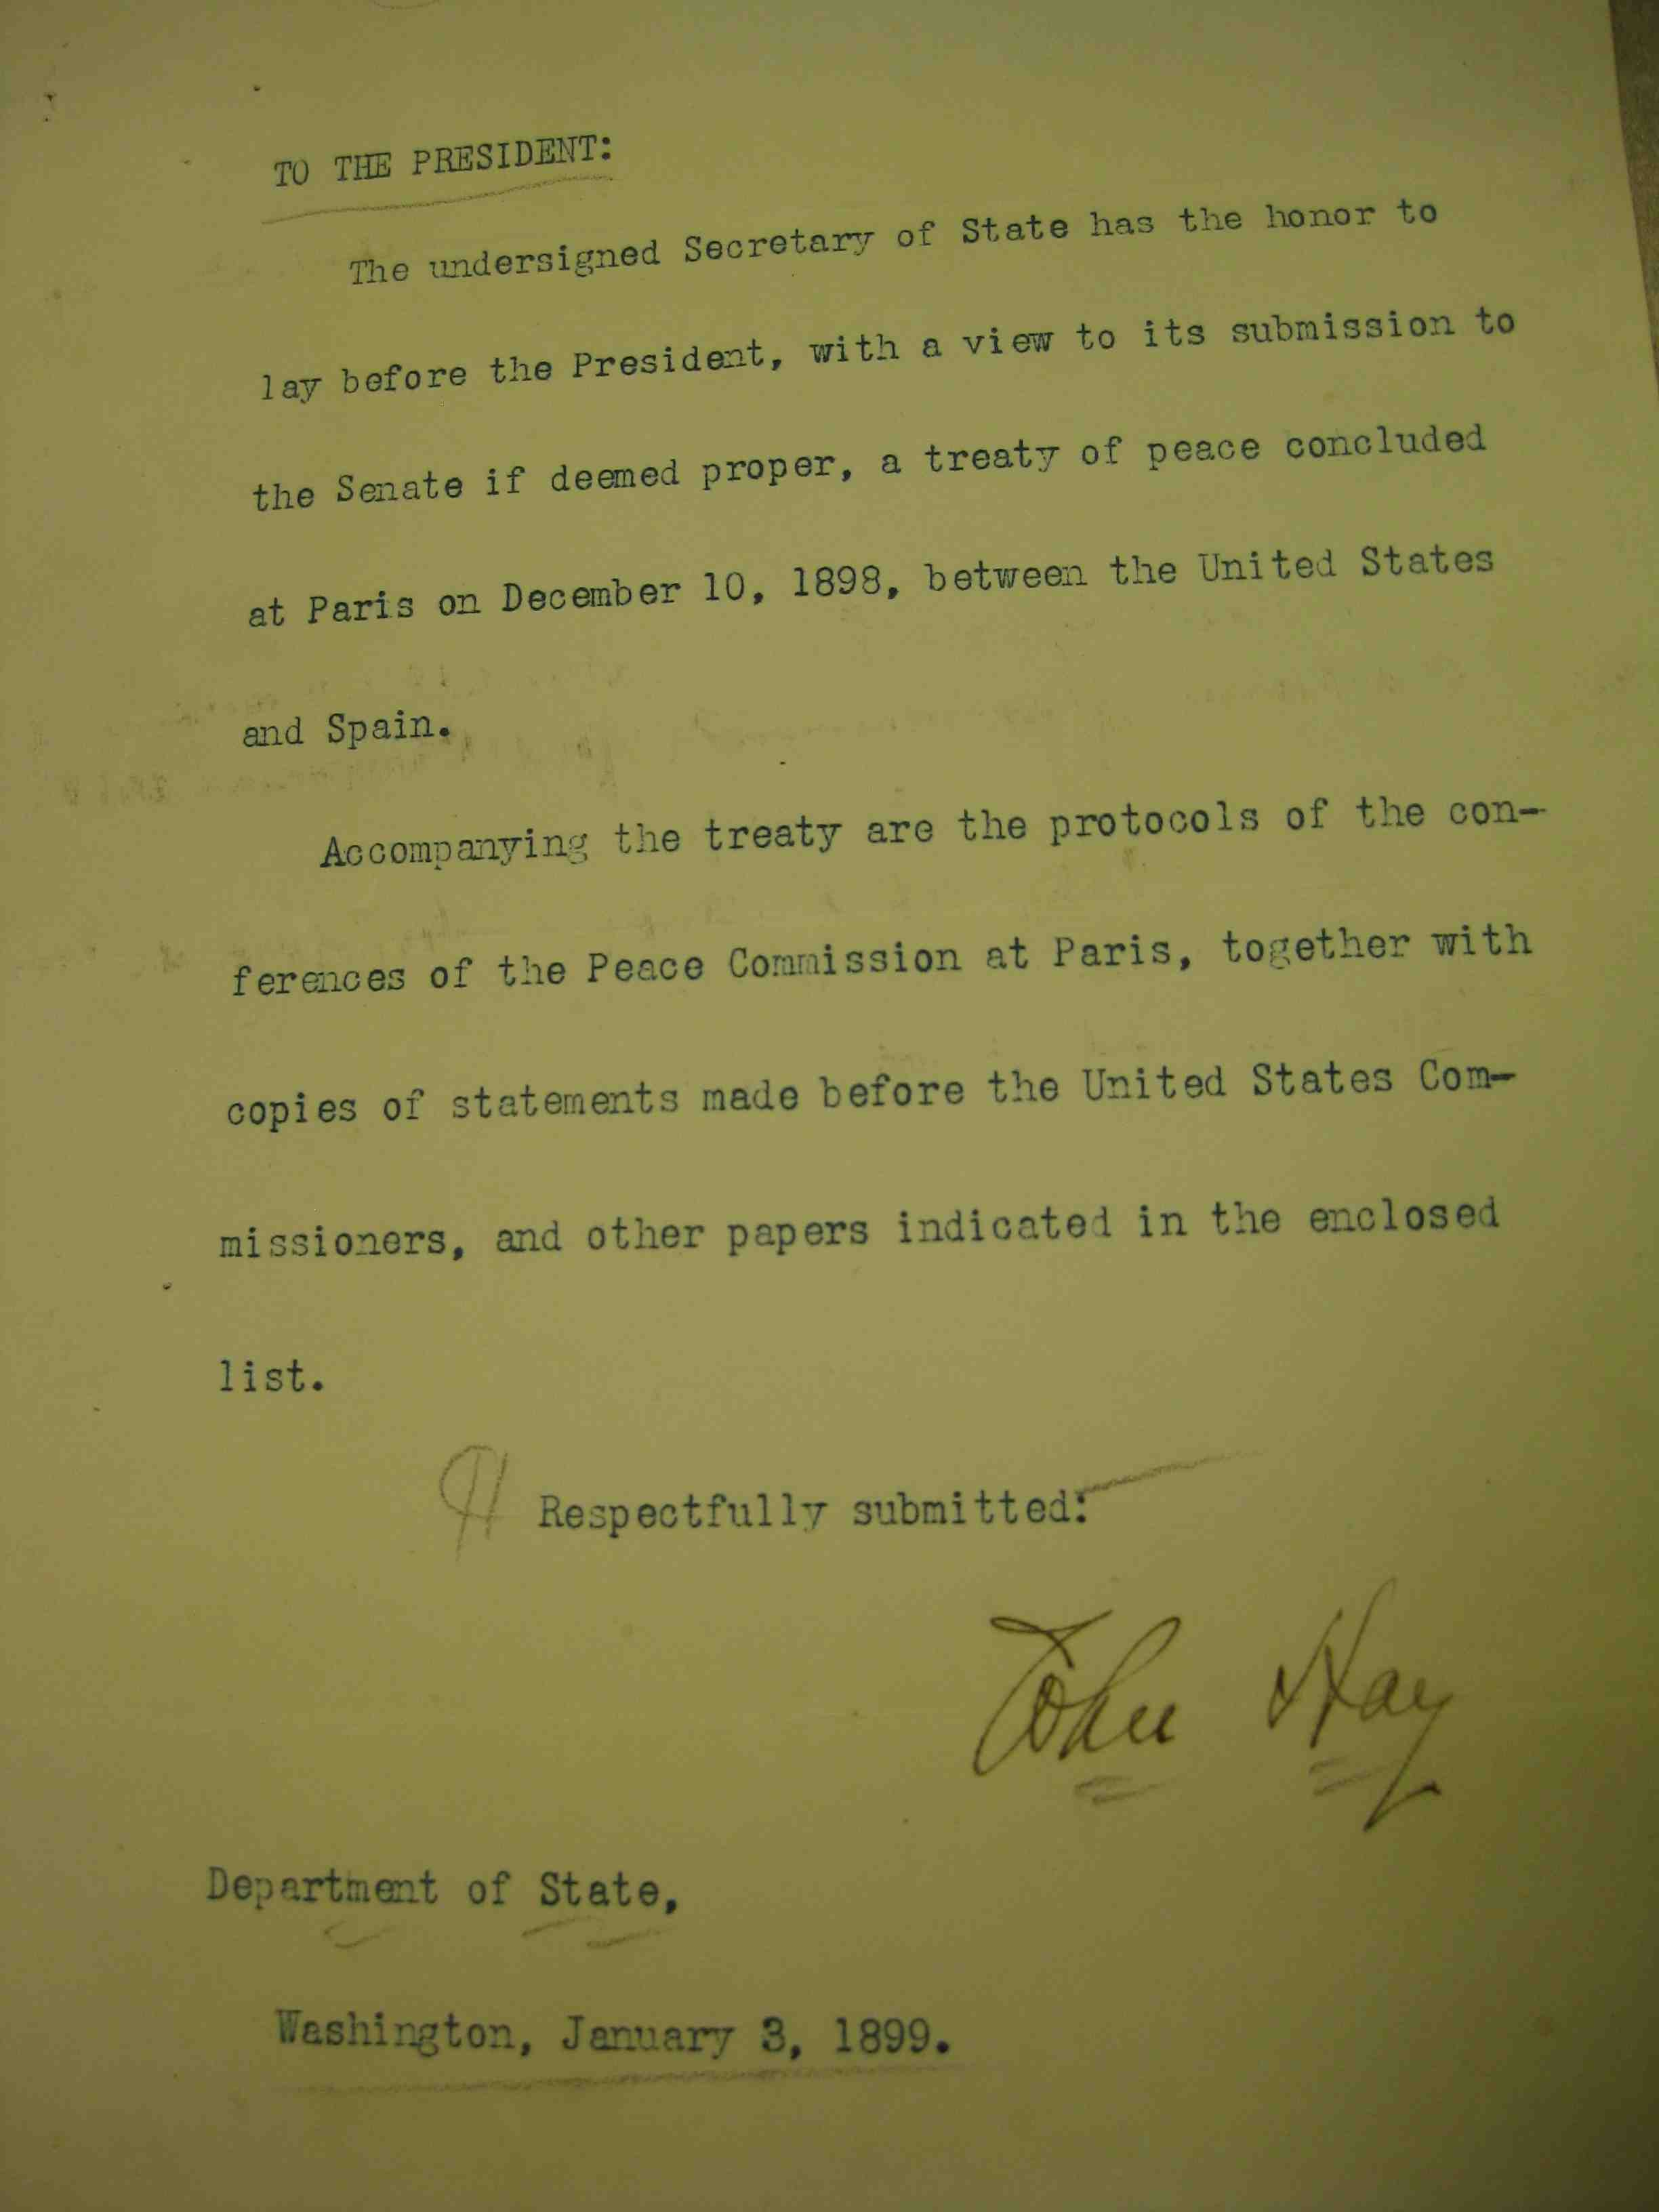 treaty of paris 1898 essay Treaty of paris 1783 wanting to be an independent nation the result and signing of the 1783 treaty of paris on september 3, was, britain gave away florida and minorca to spain and kept.